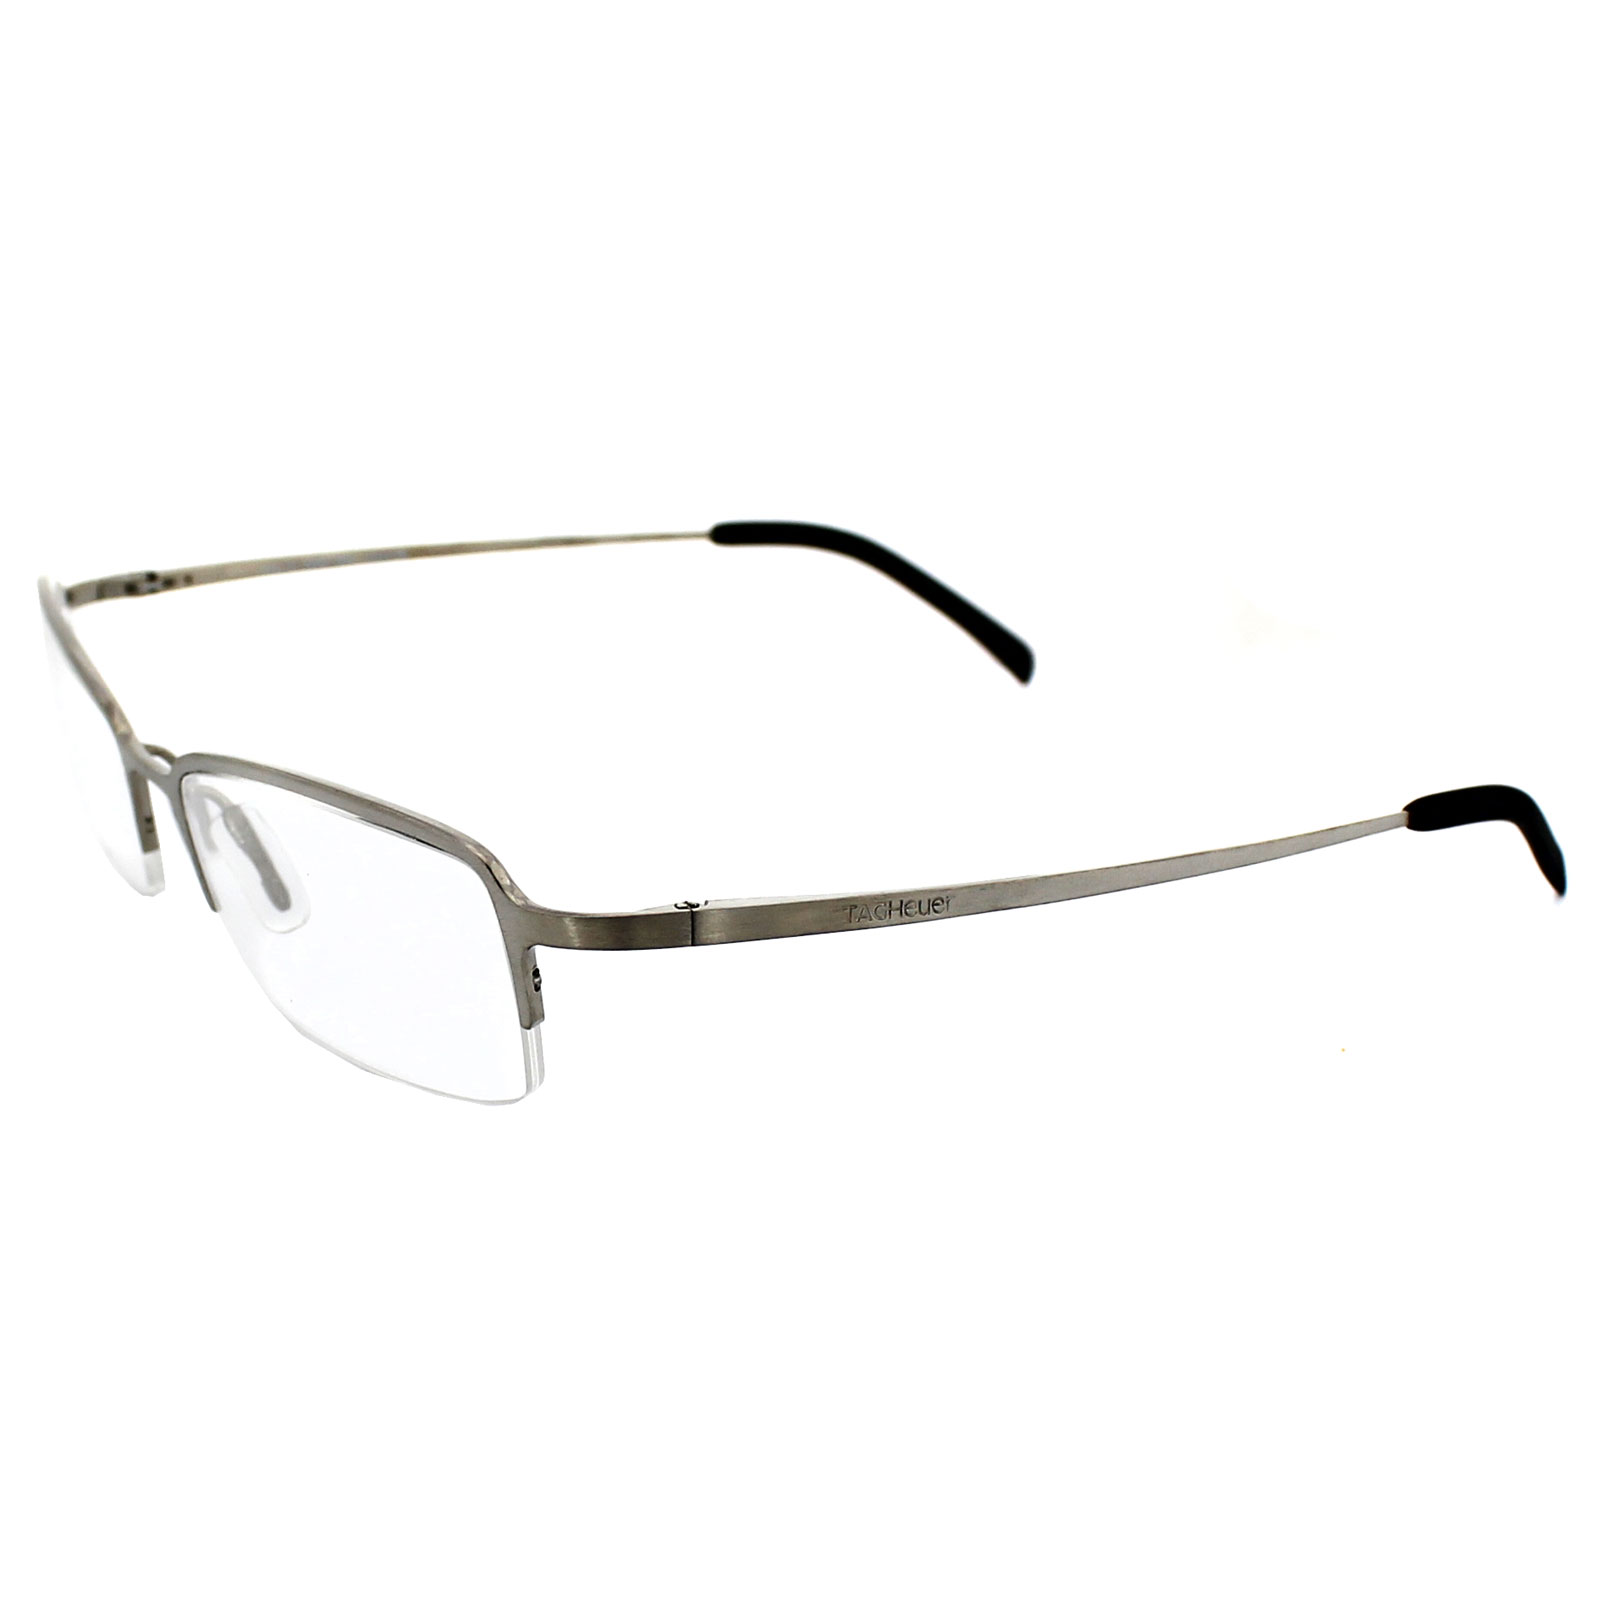 Cheap Tag Heuer Sport 4204 Frames - Discounted Sunglasses